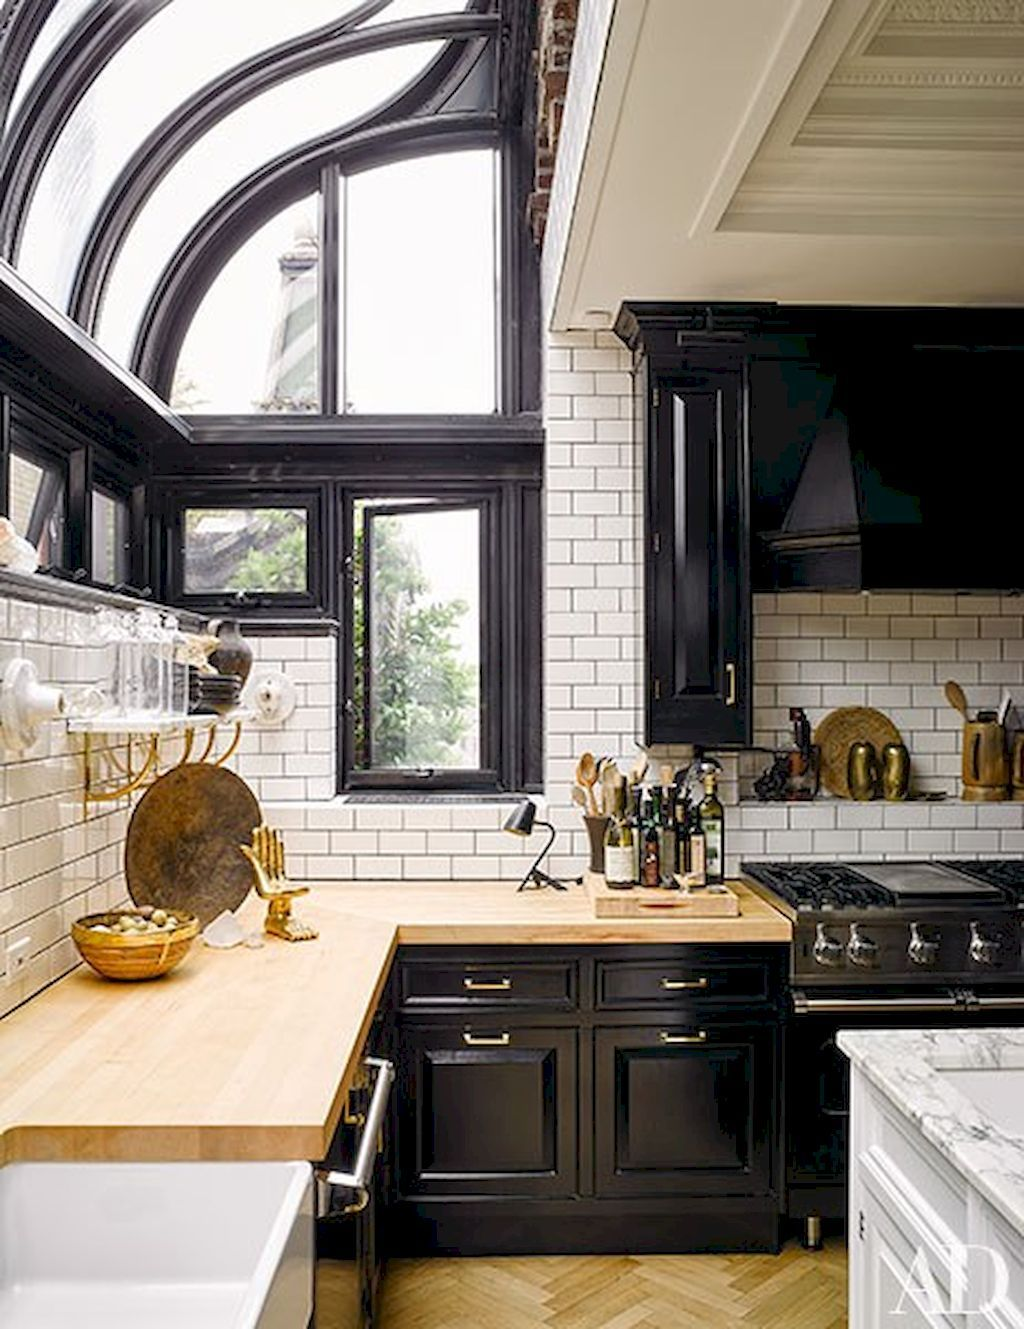 simply apartment kitchen decorating ideas on a budget dream